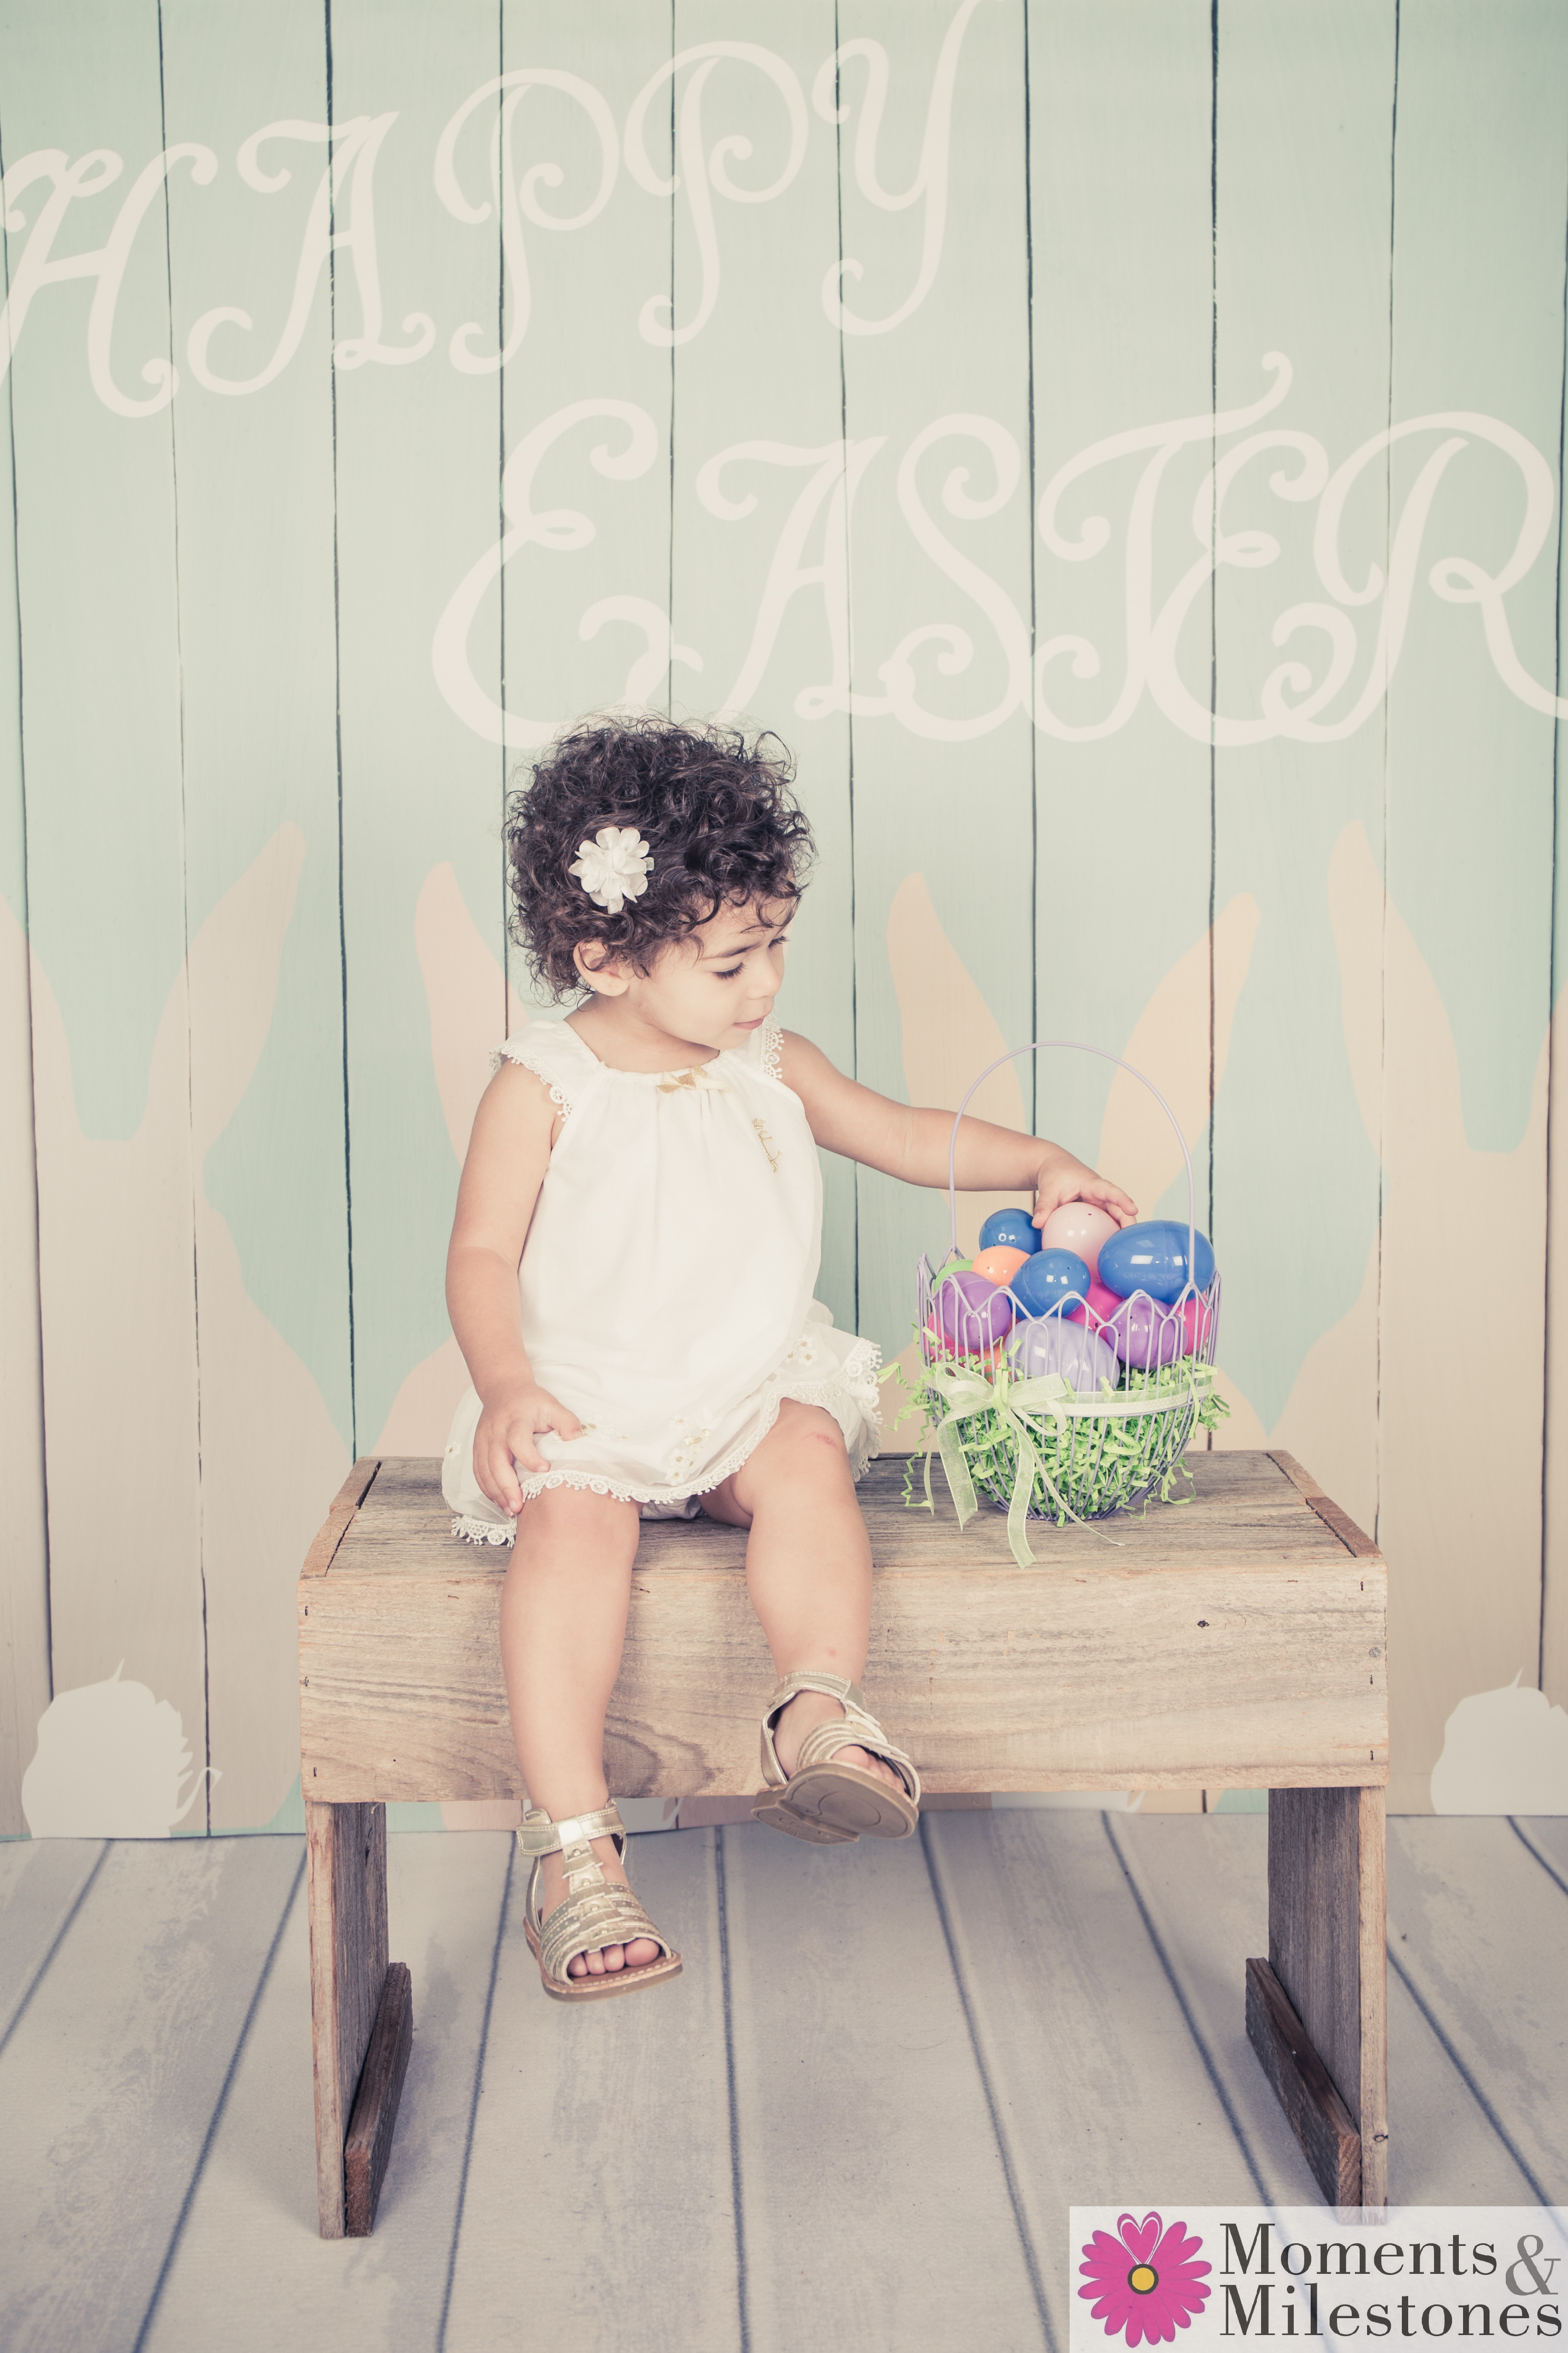 Easter Mini-Session Moments & Milestones Studio Photography San Antonio Family and Children Sessions (18)